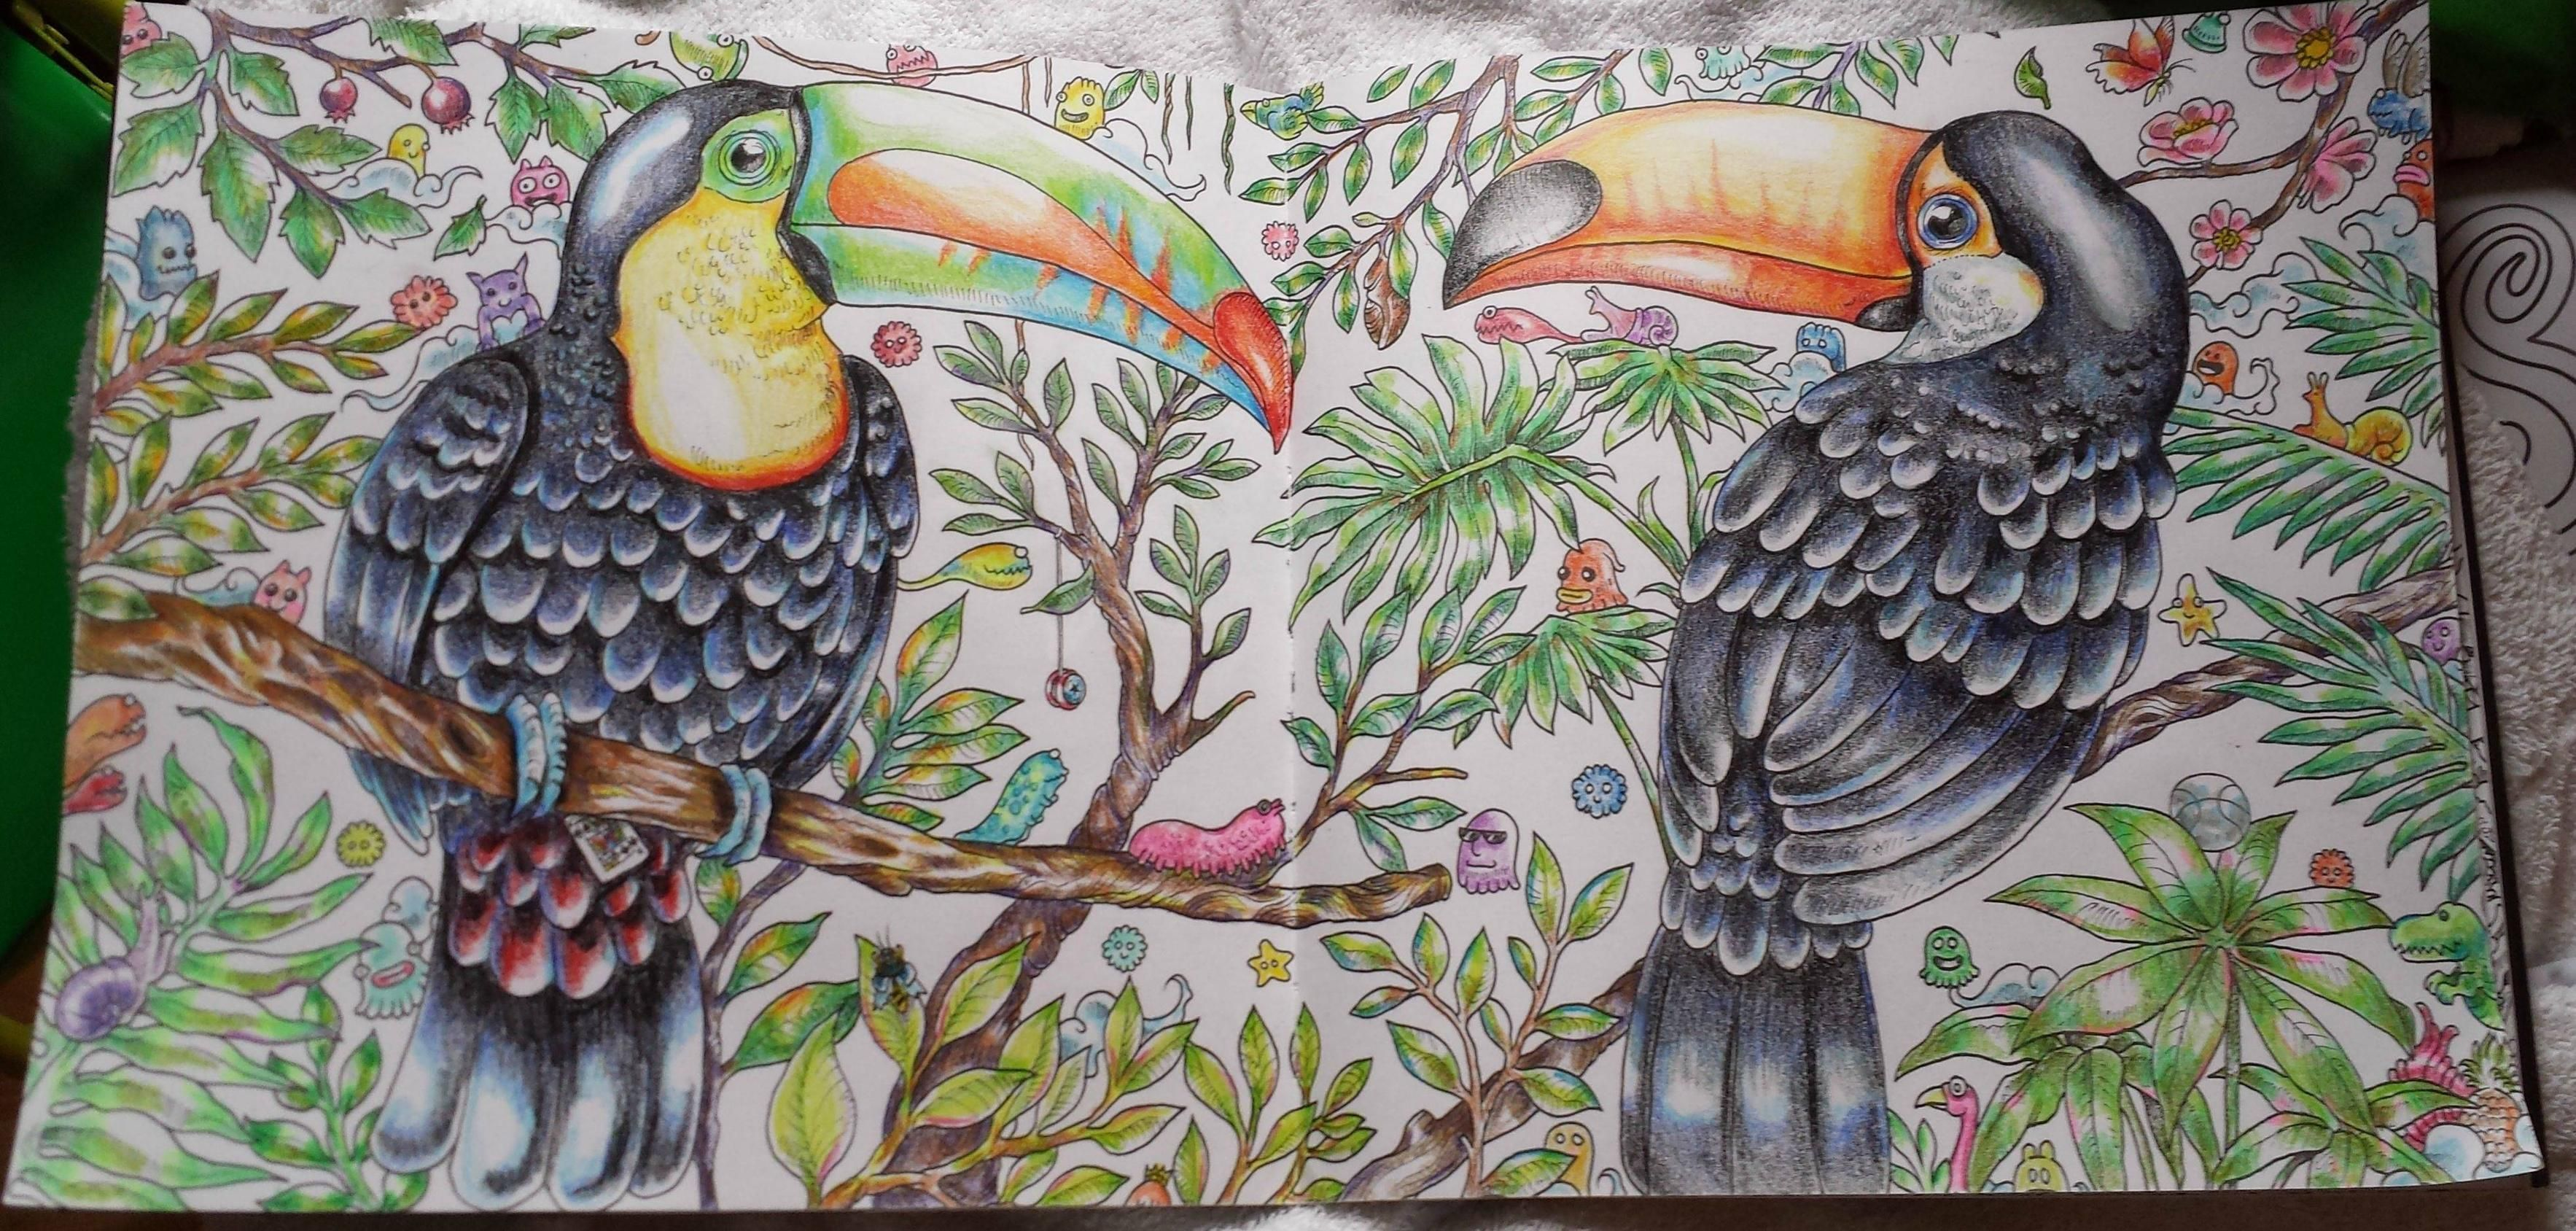 Two Toucans From The Adult Coloring Book Animorphia Just